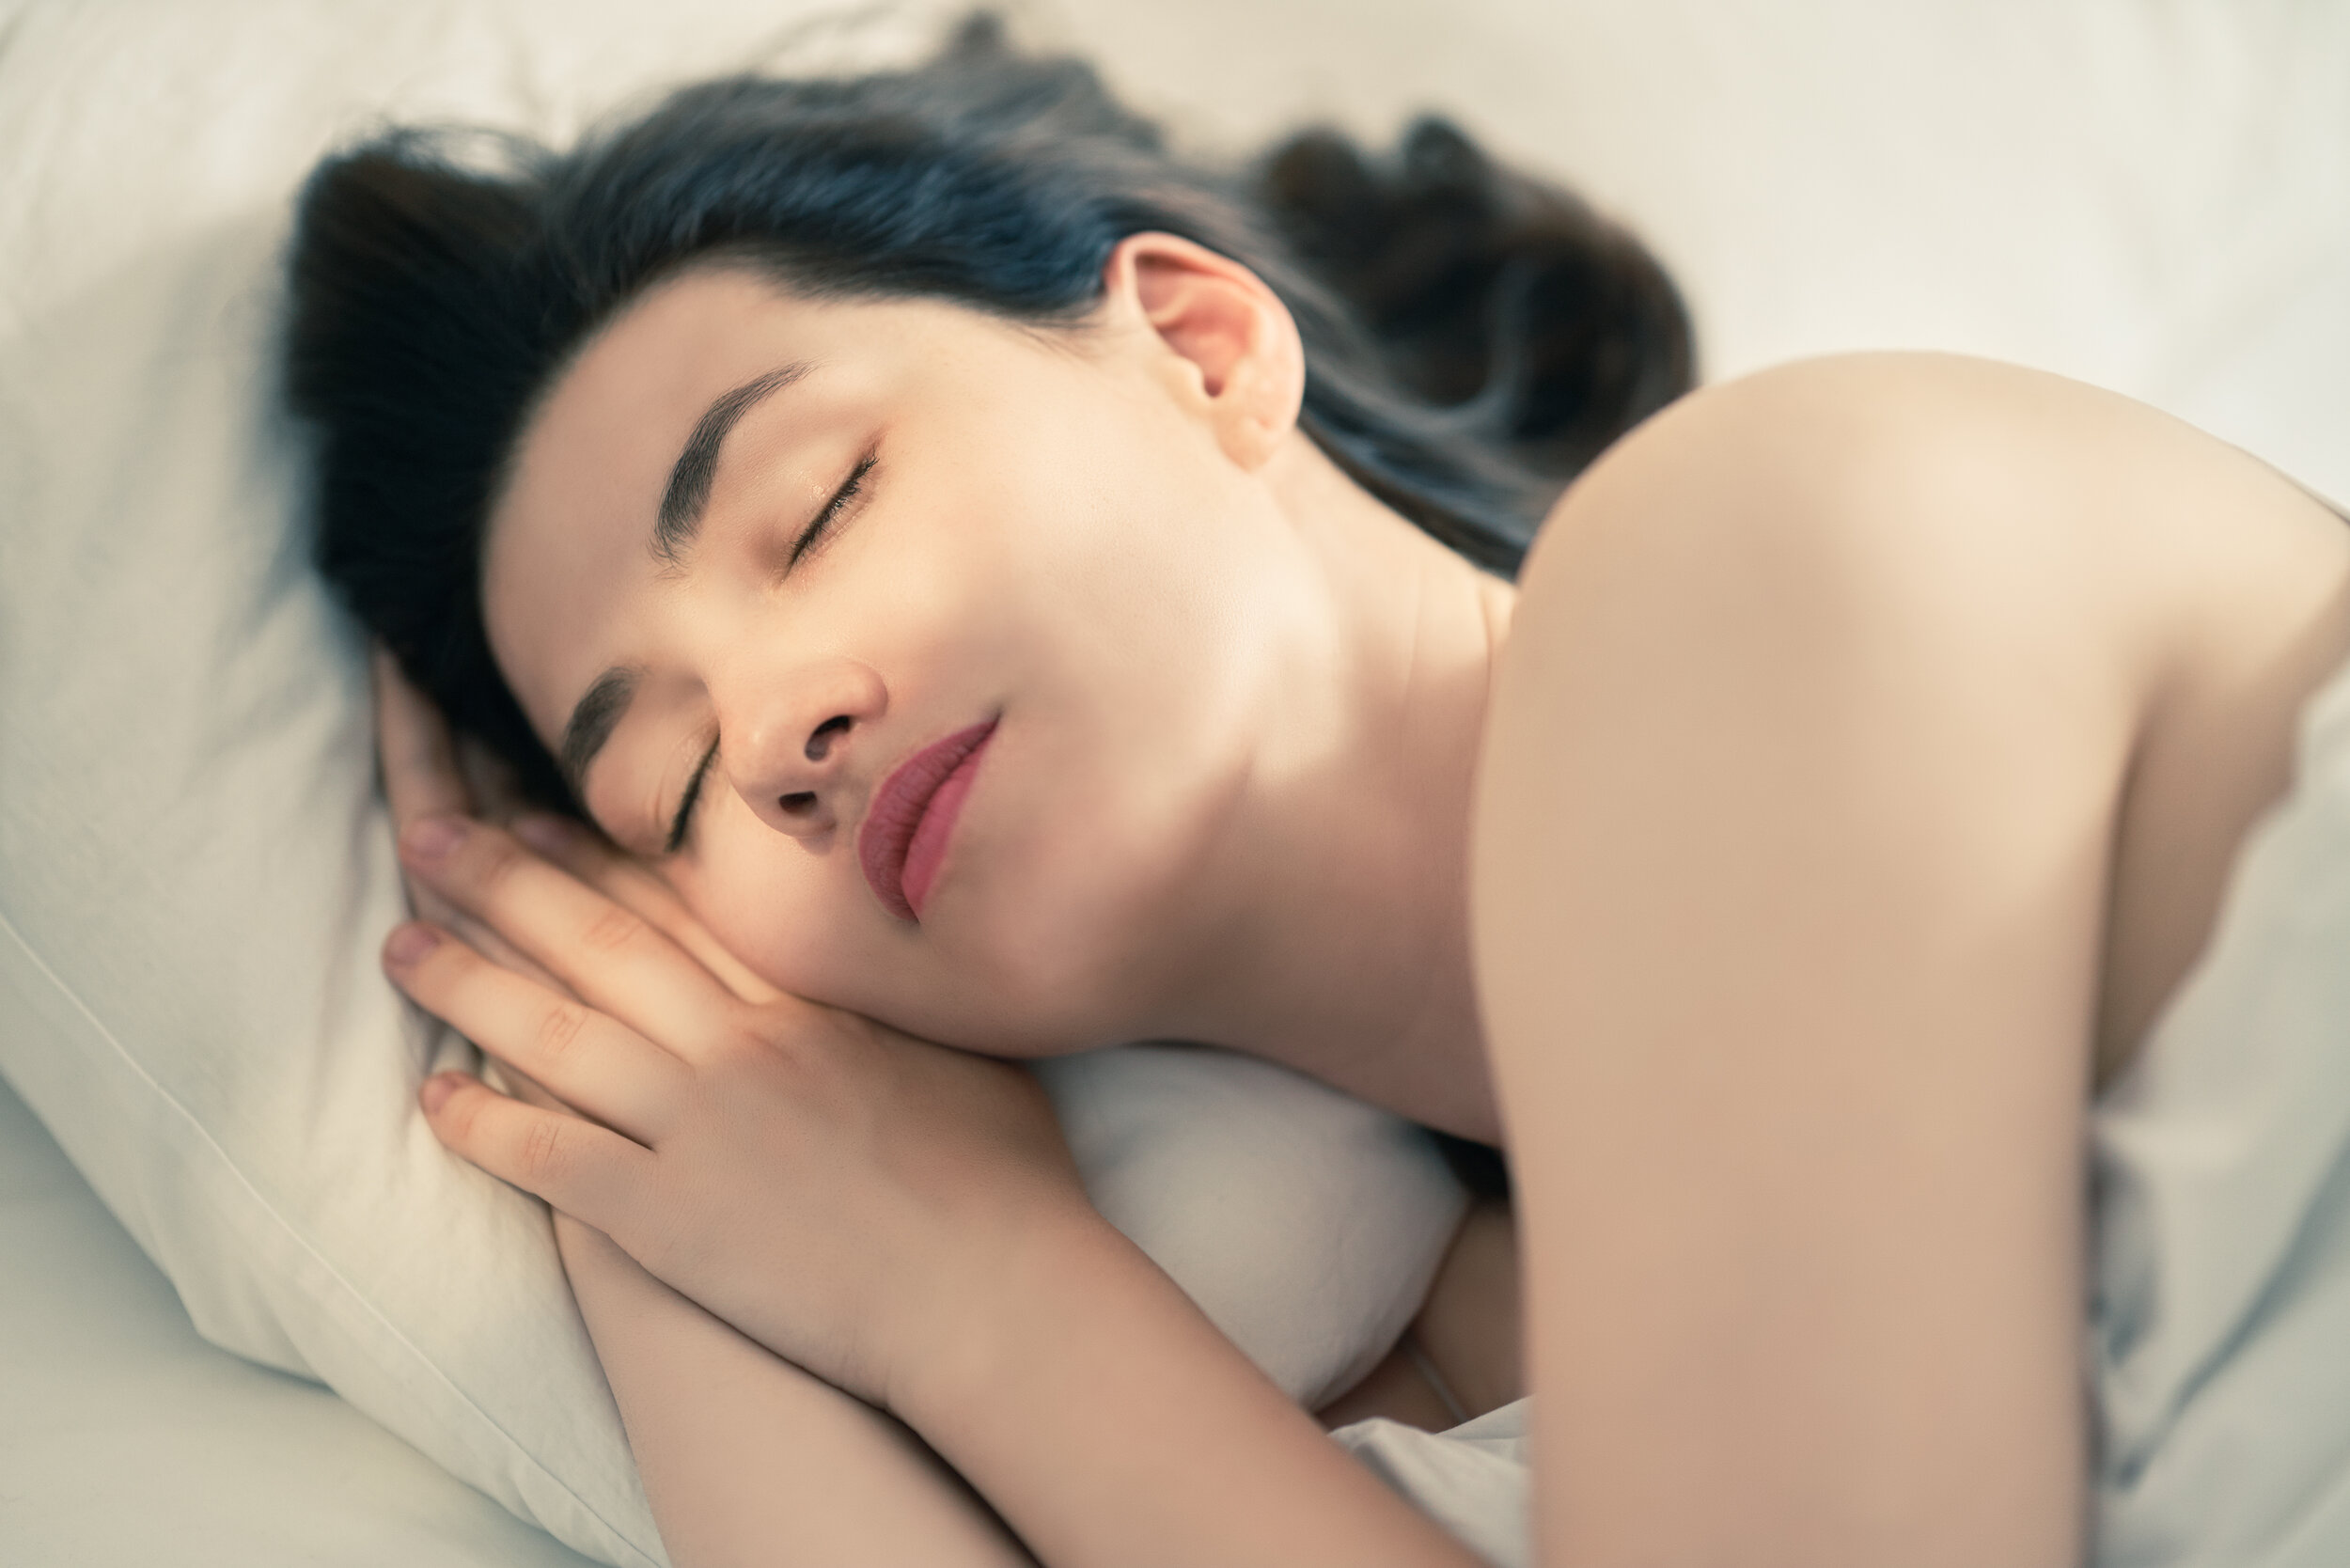 young-woman-is-sleeping-K5DRMGQ.jpg